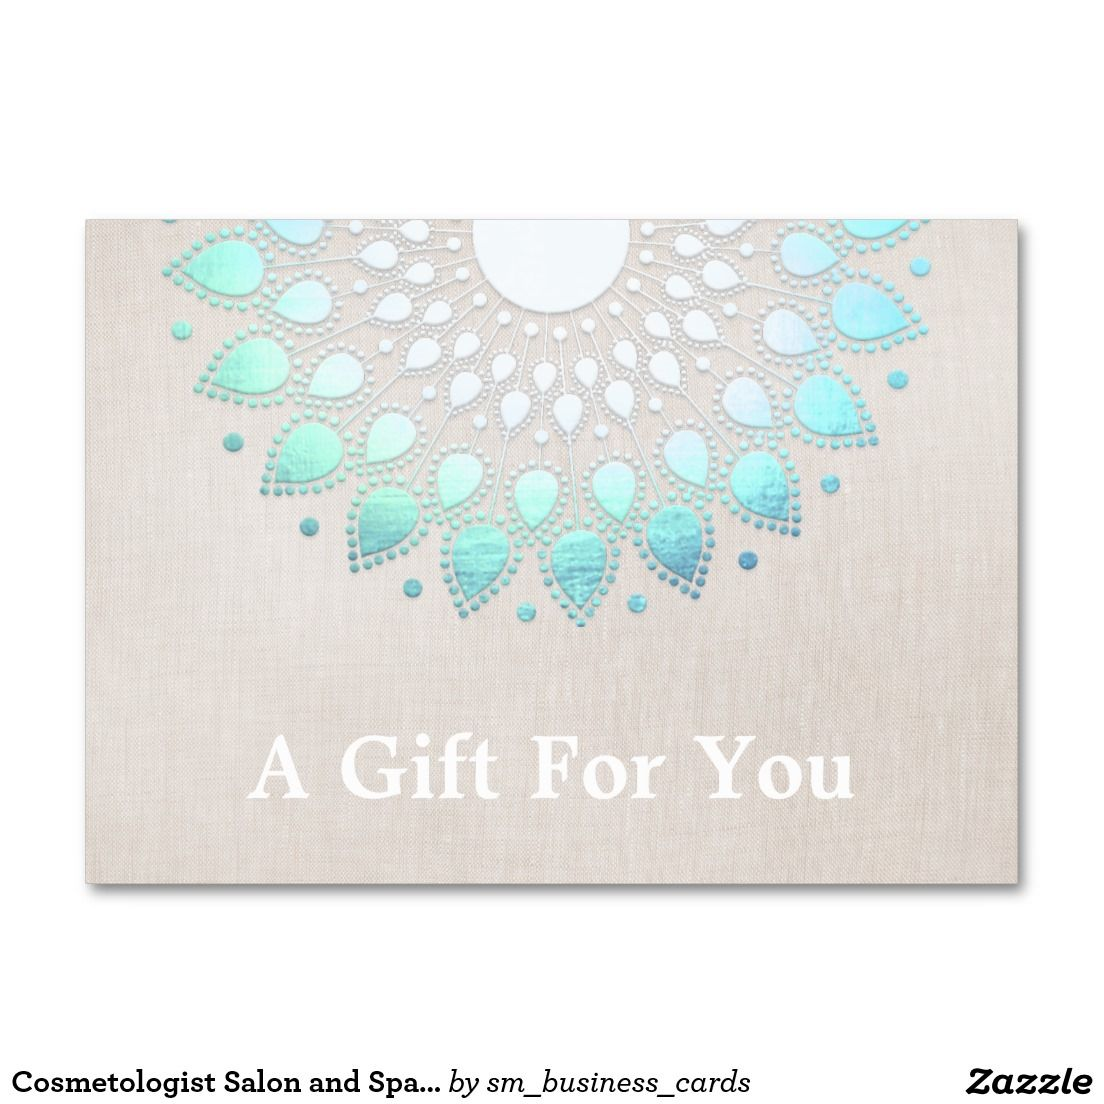 Cosmetologist Salon and Spa Gift Card | Spa gifts, Spa and ...